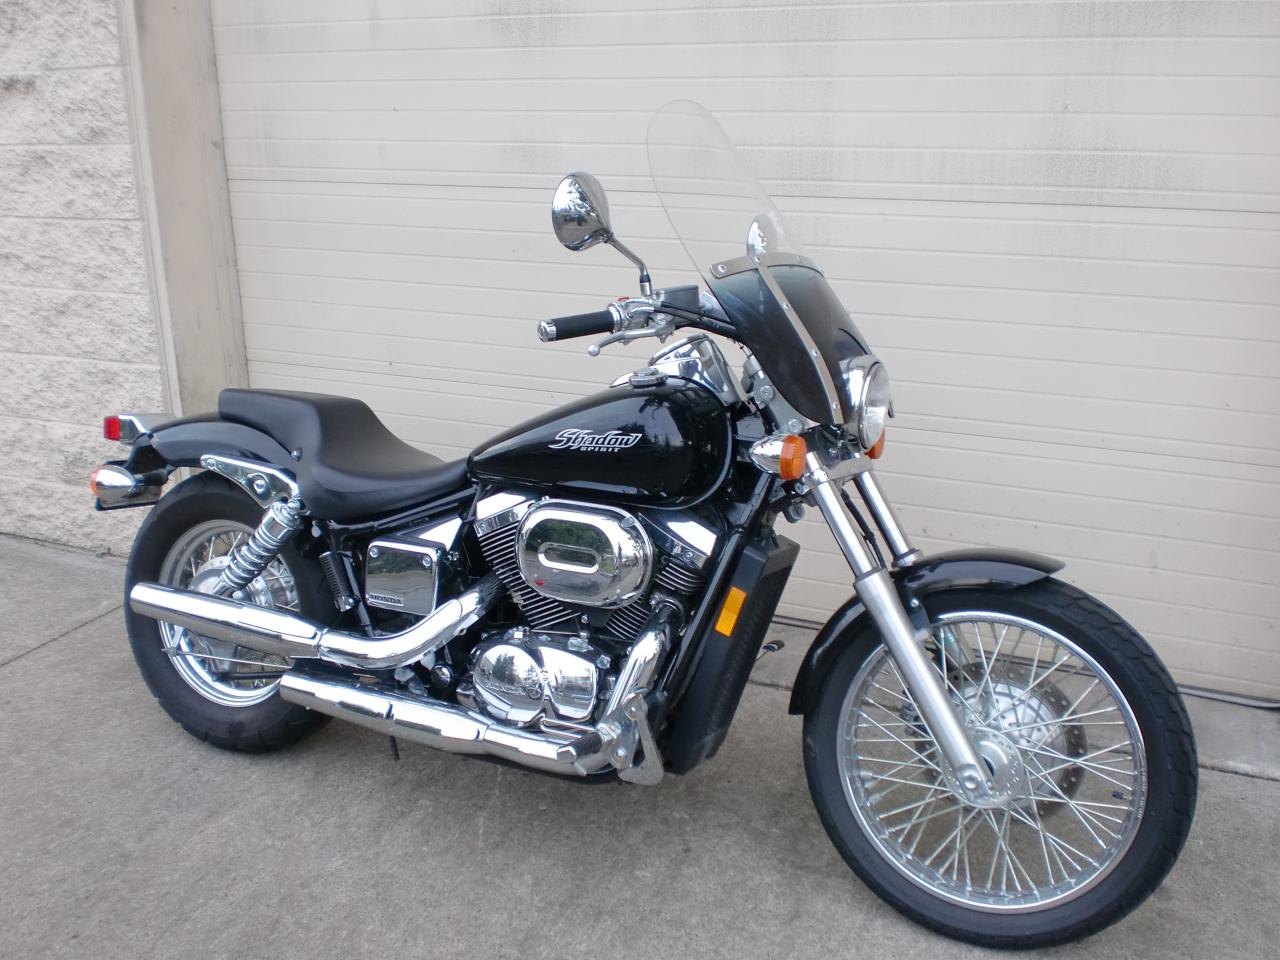 2008 honda shadow spirit 750 vt750c2 moto zombdrive com. Black Bedroom Furniture Sets. Home Design Ideas